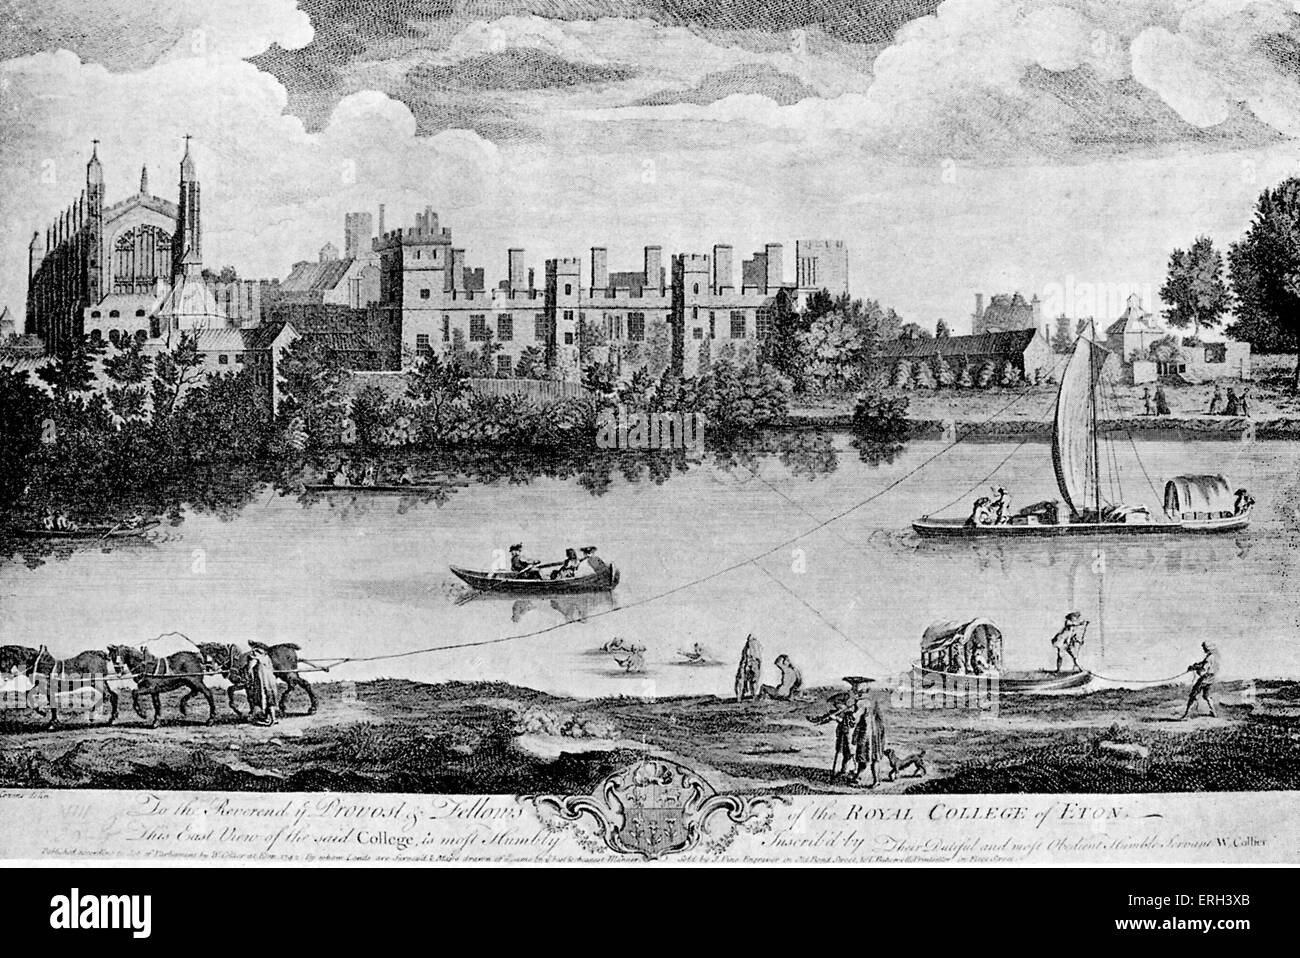 Eton - 1742.  Drawing by A. Cozens, engraving by J. Pine. Copy. - Stock Image